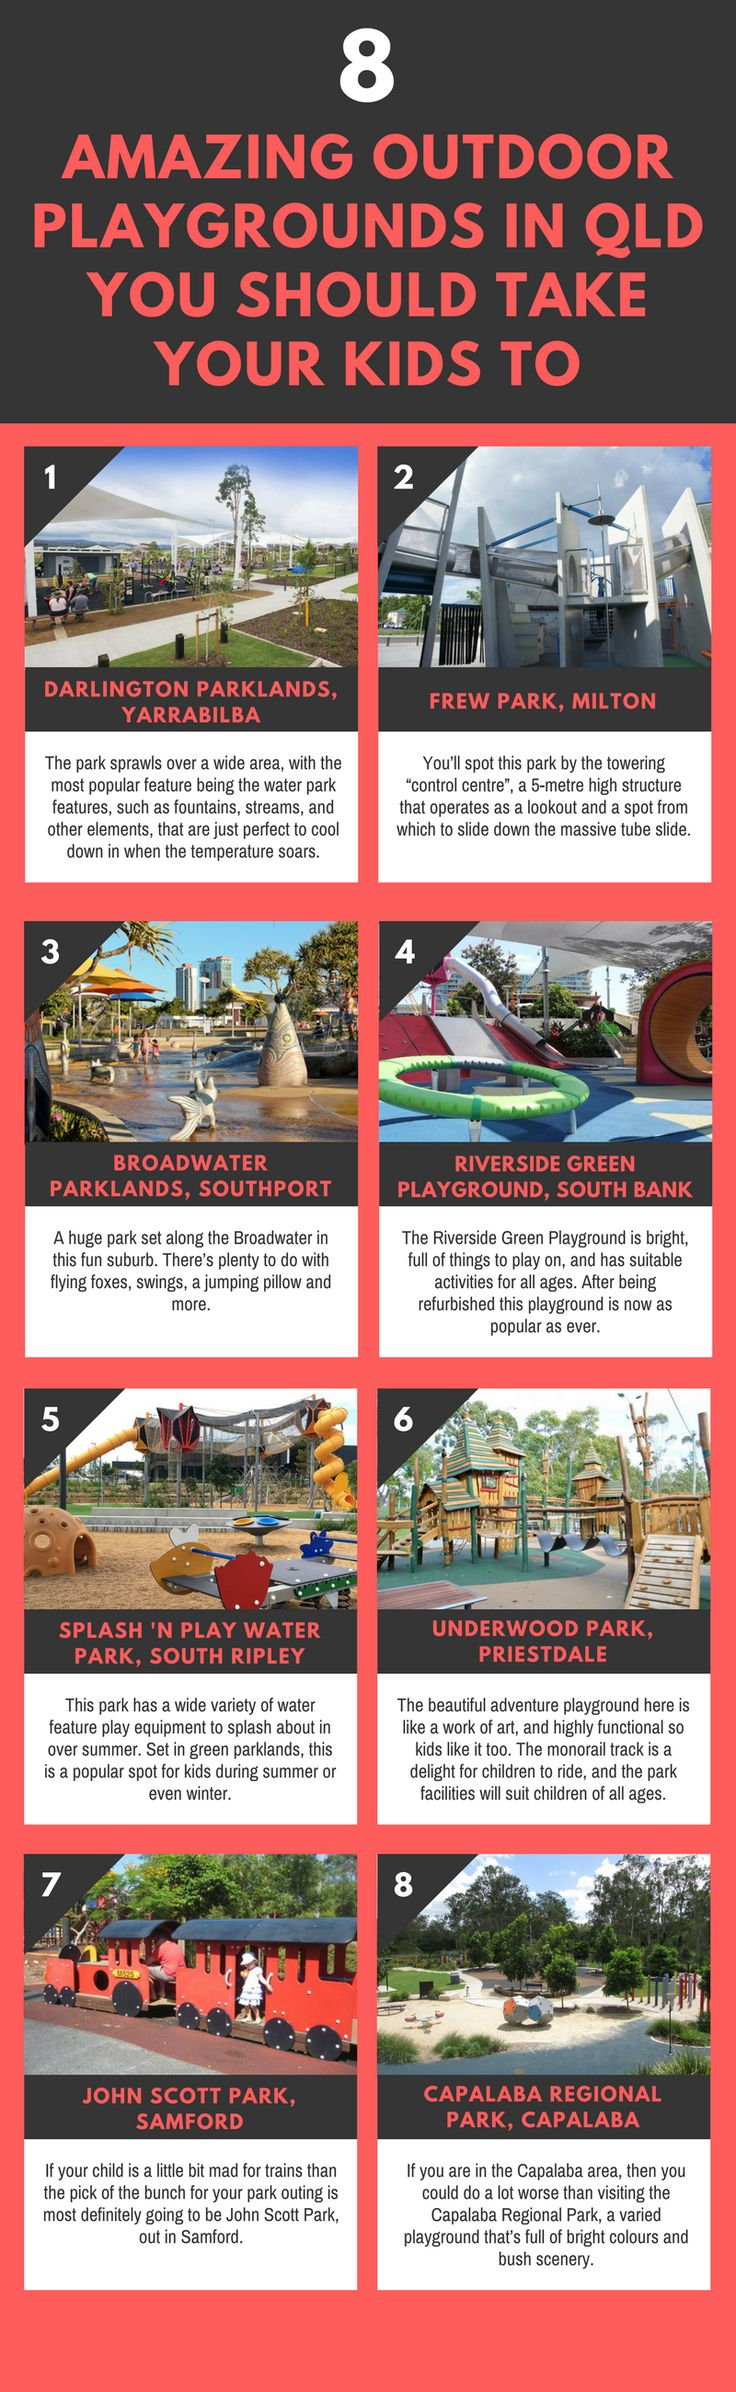 Parents, have you ever visited the top playgrounds in Queensland? These amazing playgrounds can create more fun memories with your children and family. So, You must take your kids out there. Visit here to know more about the top 8 playgrounds in Queensland. #playground #parkplayequipment